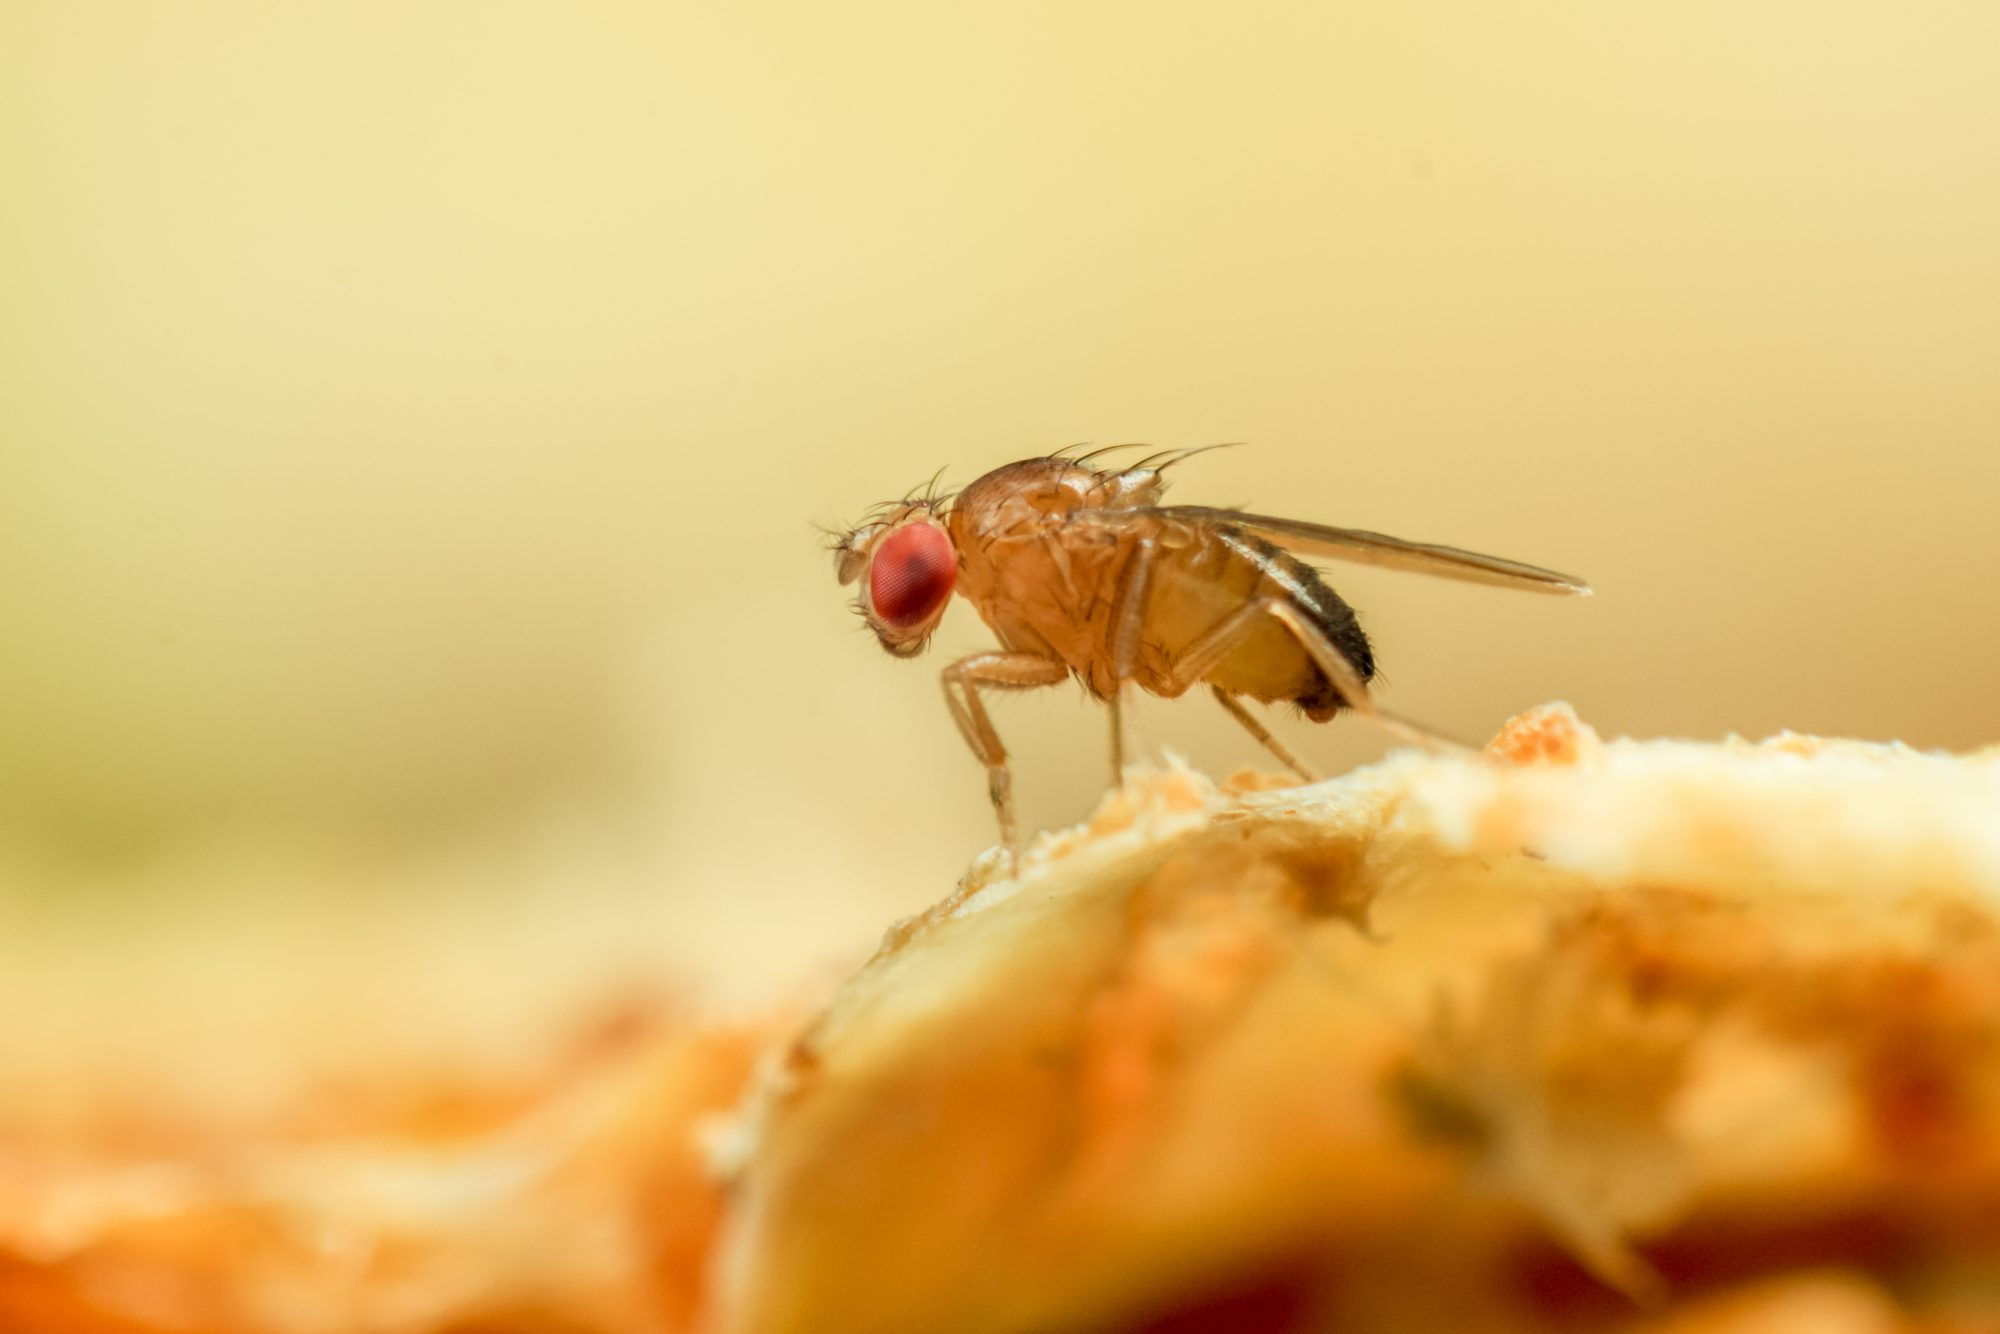 macro close up of fruit fly